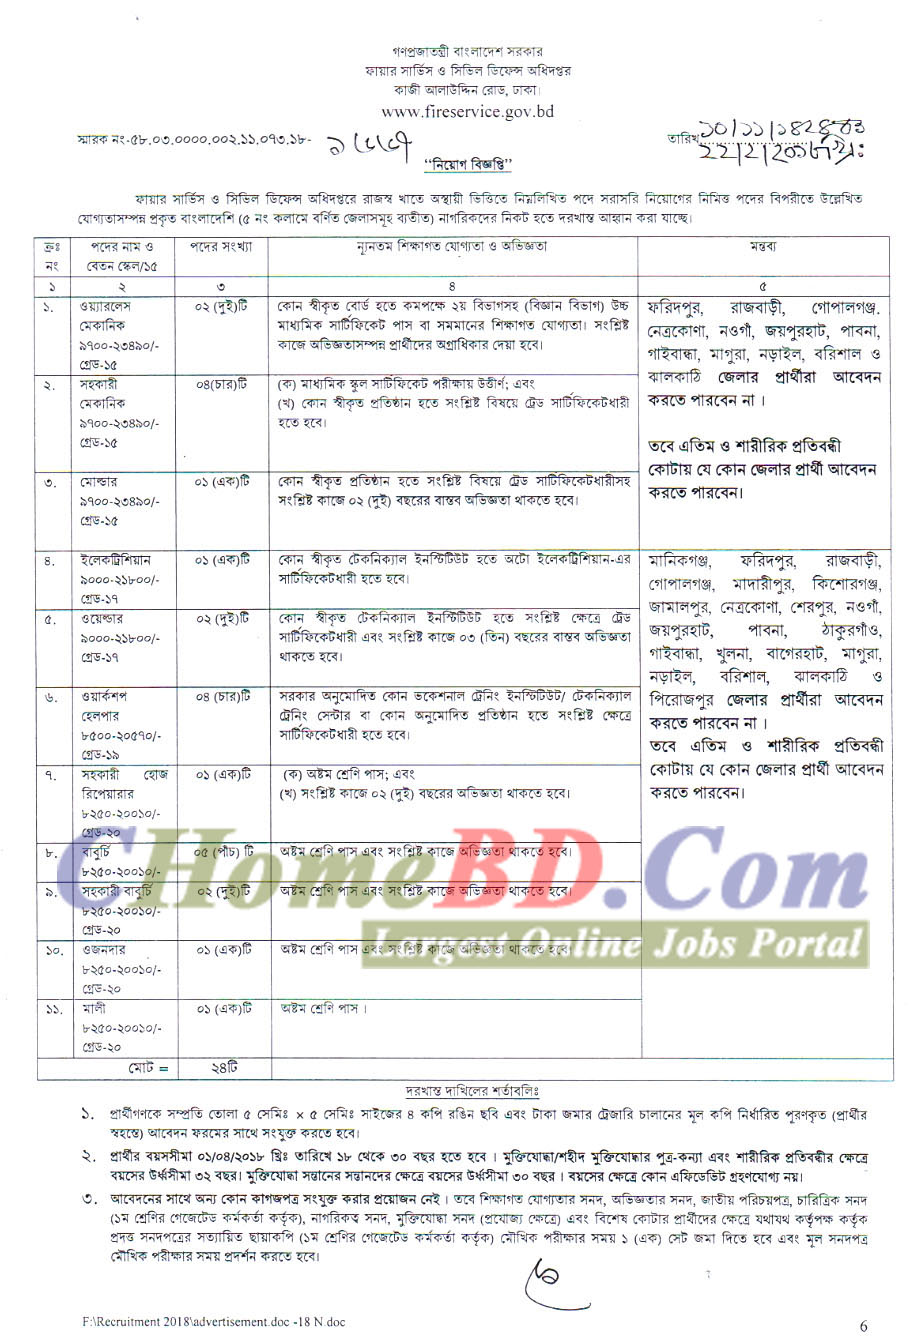 Bangladesh Fire Service and Civil Defense Service Job Circular